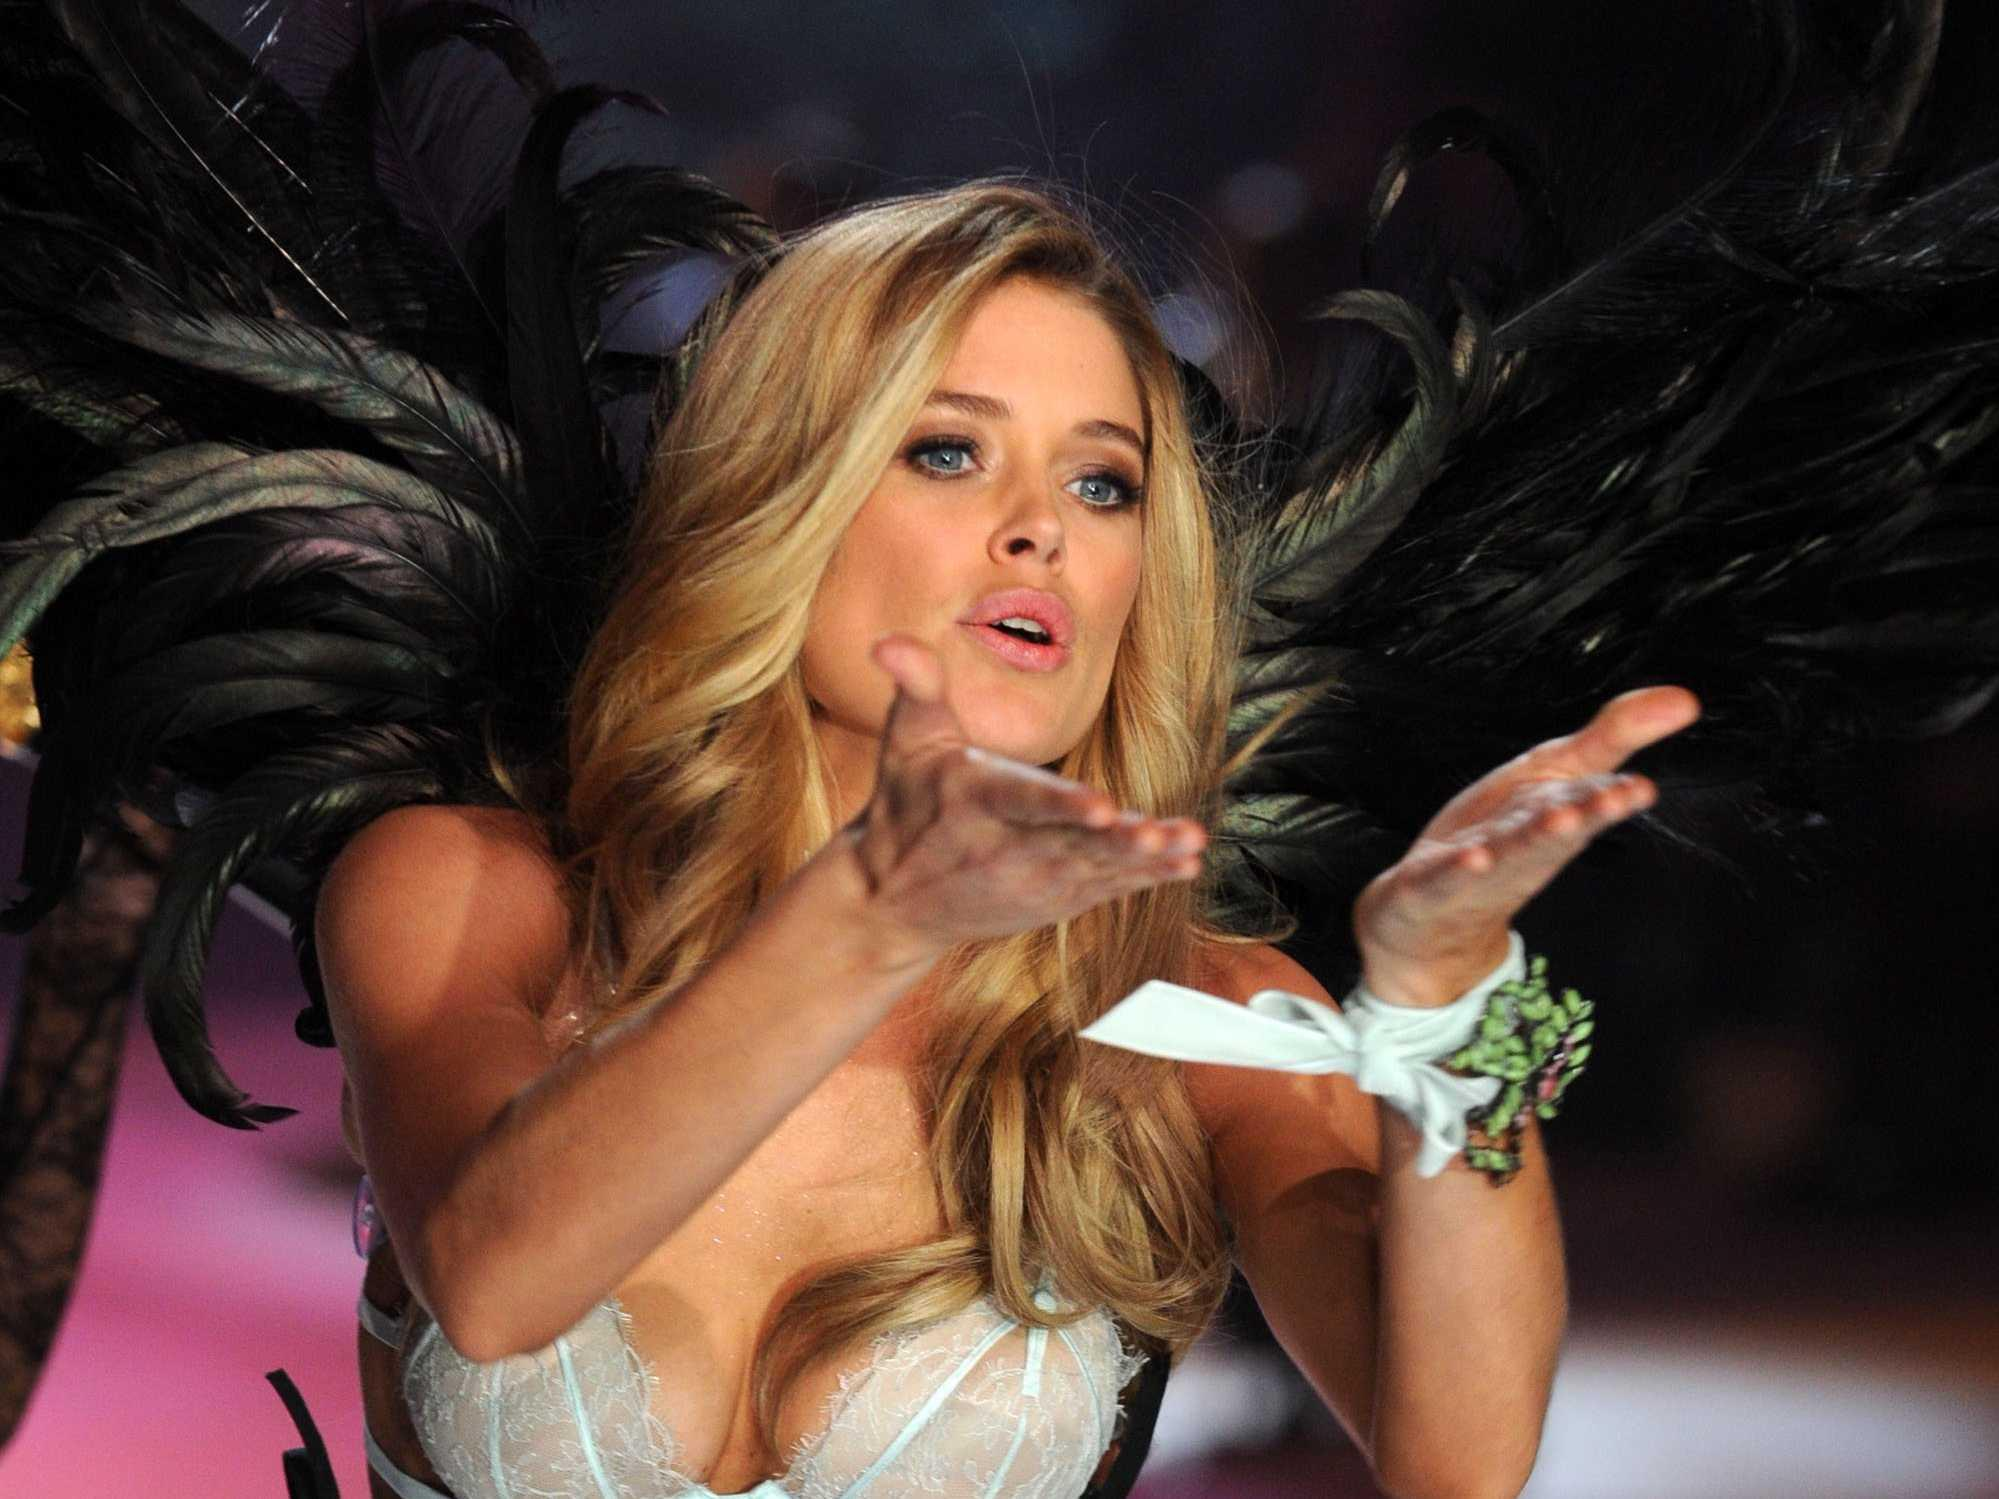 Victoria's Secret Angels are leaving the brand in droves